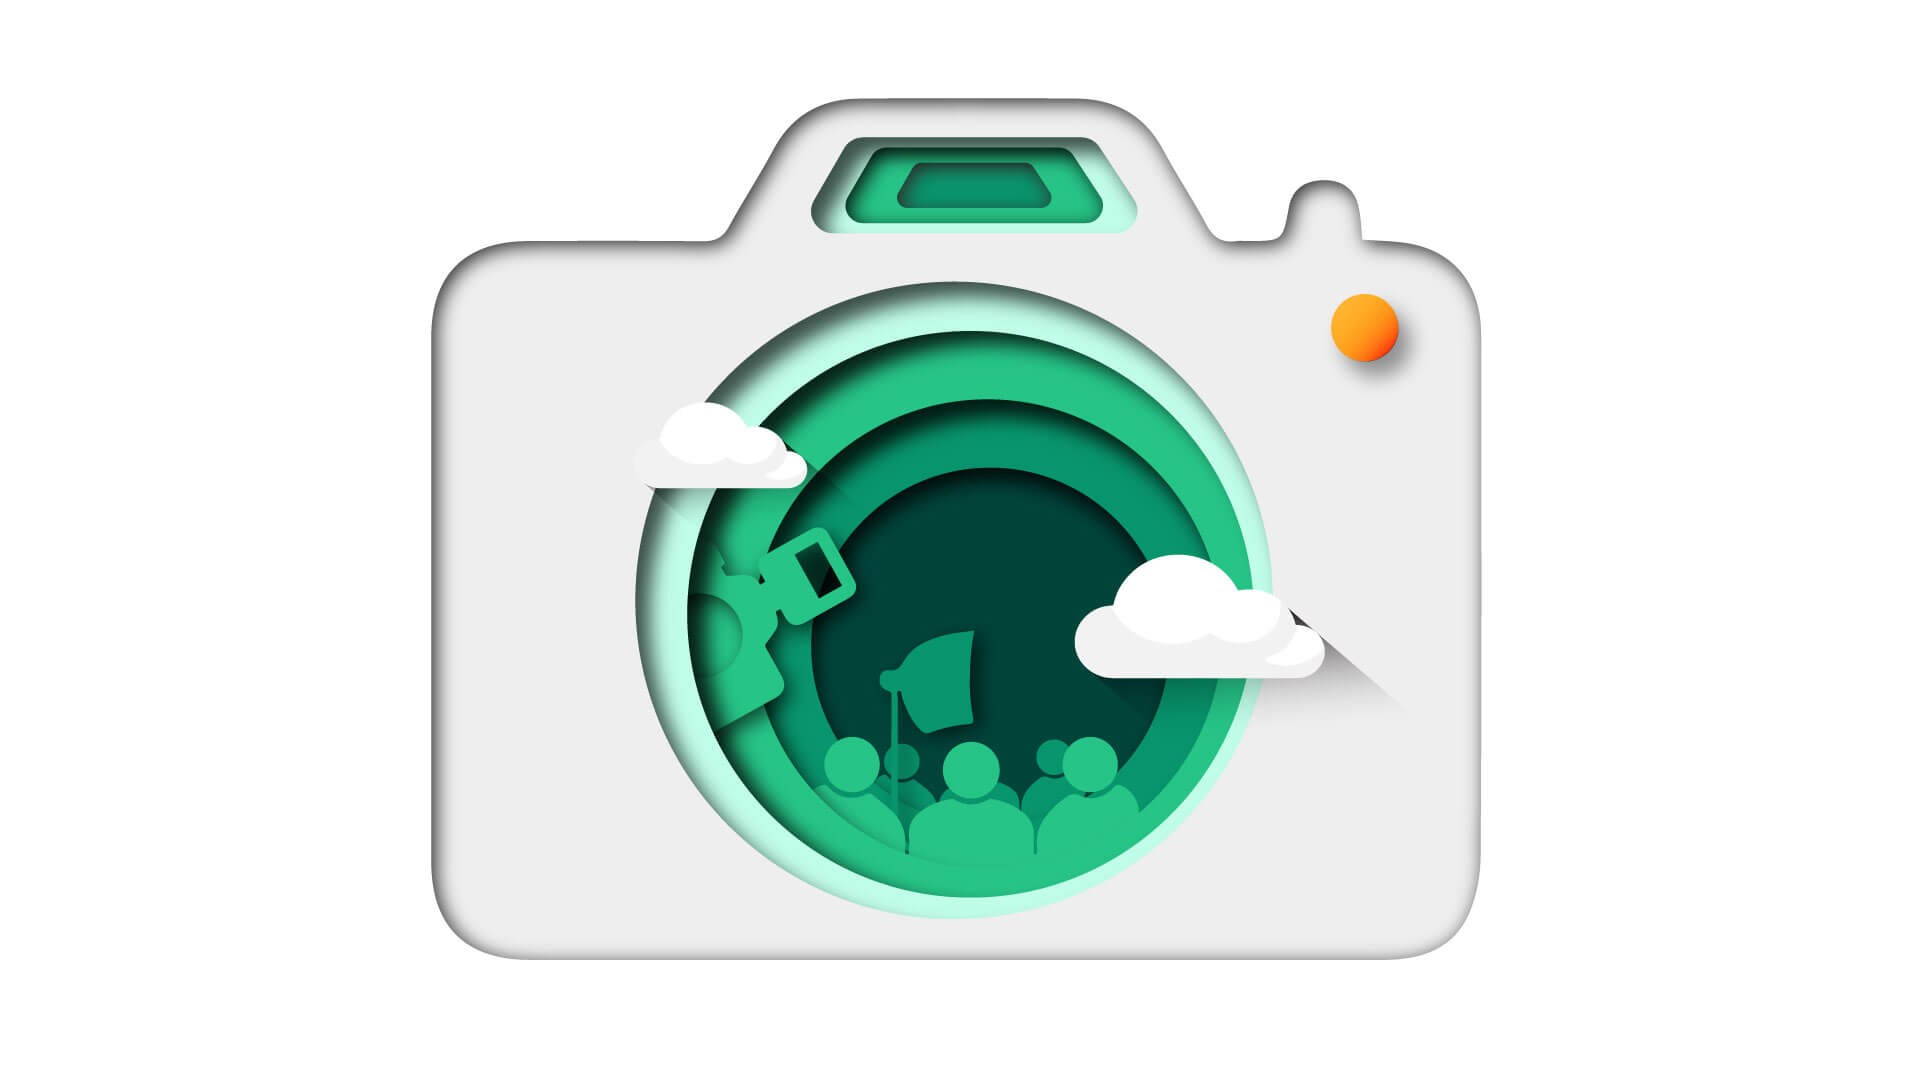 camera-icon-green-white